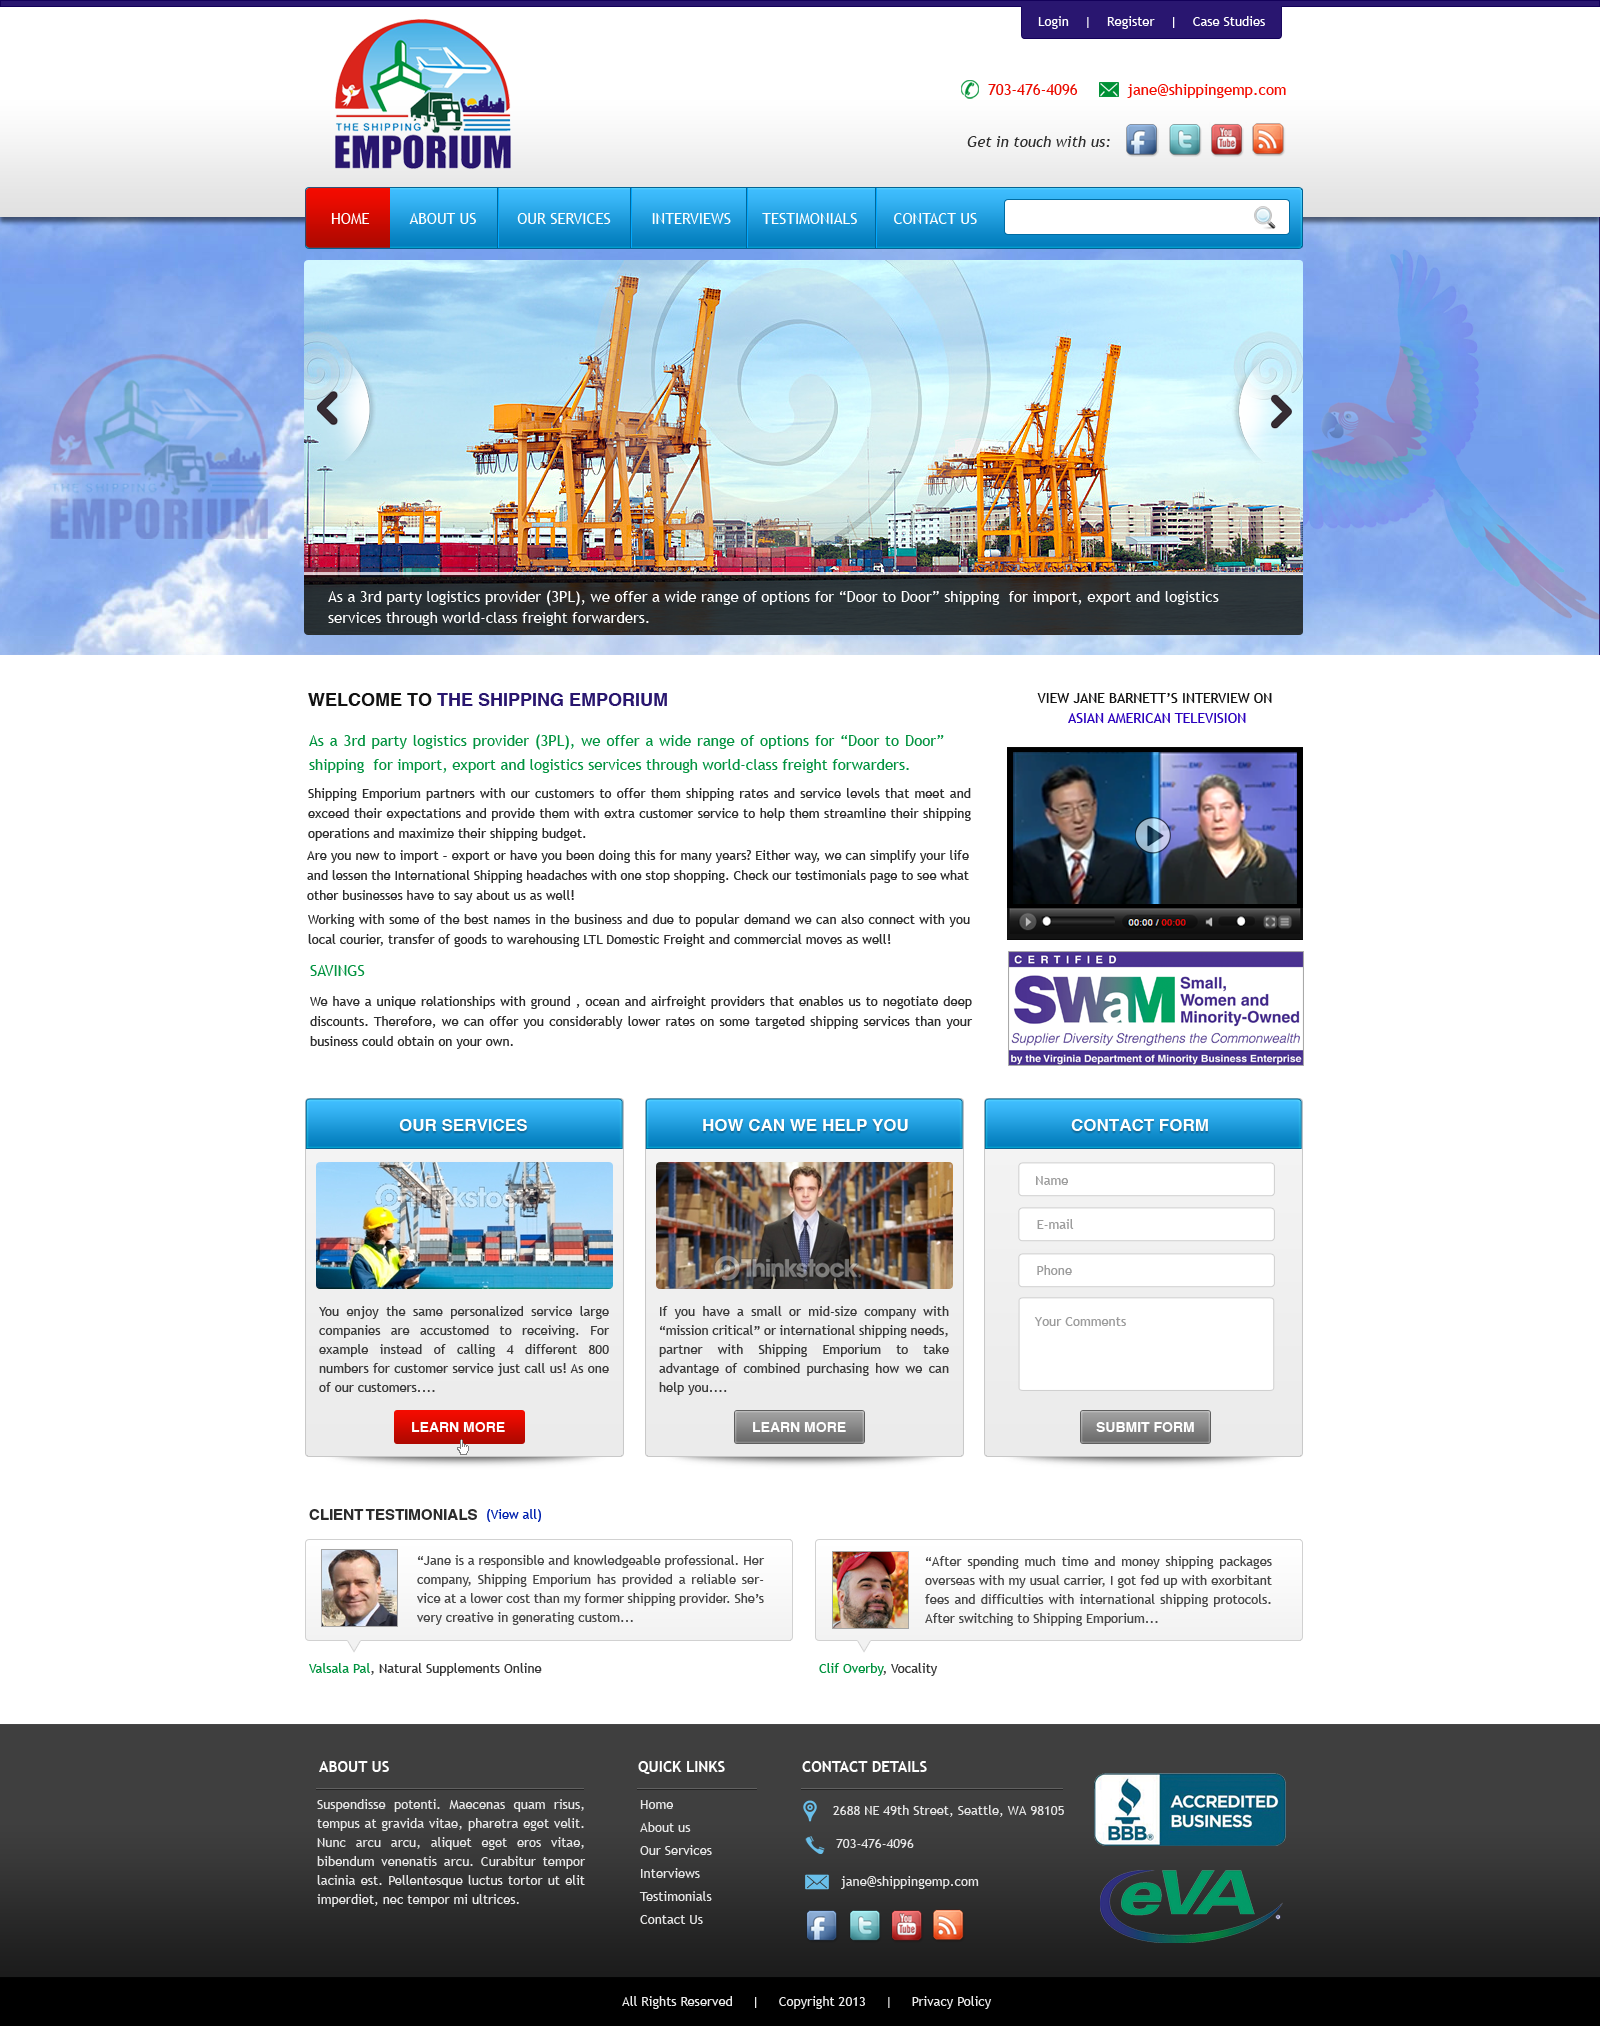 Web Page Design by Vishwa Km - Entry No. 64 in the Web Page Design Contest Artistic Web Page Design for The Shipping Emporium Website.